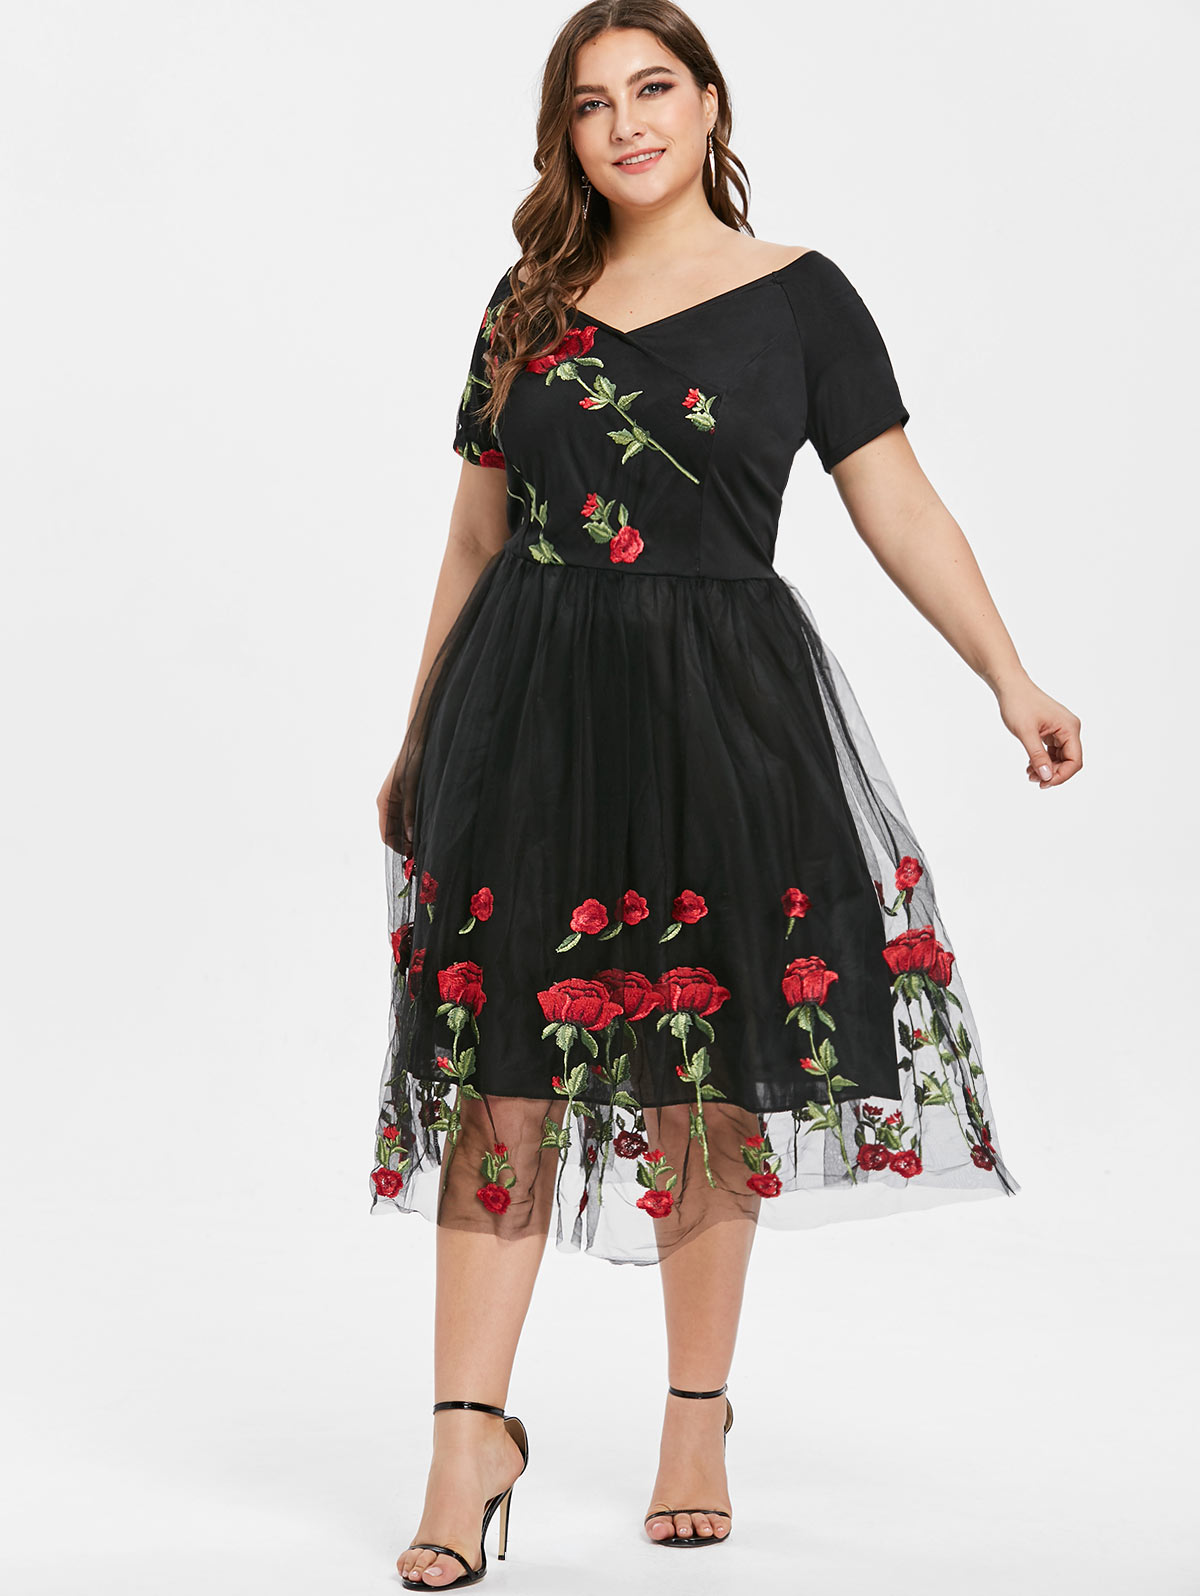 7a96bf114 Wipalo Women Off The Shoulder Floral Embroidery A Line Dress Plus Size  Summer V-Neck